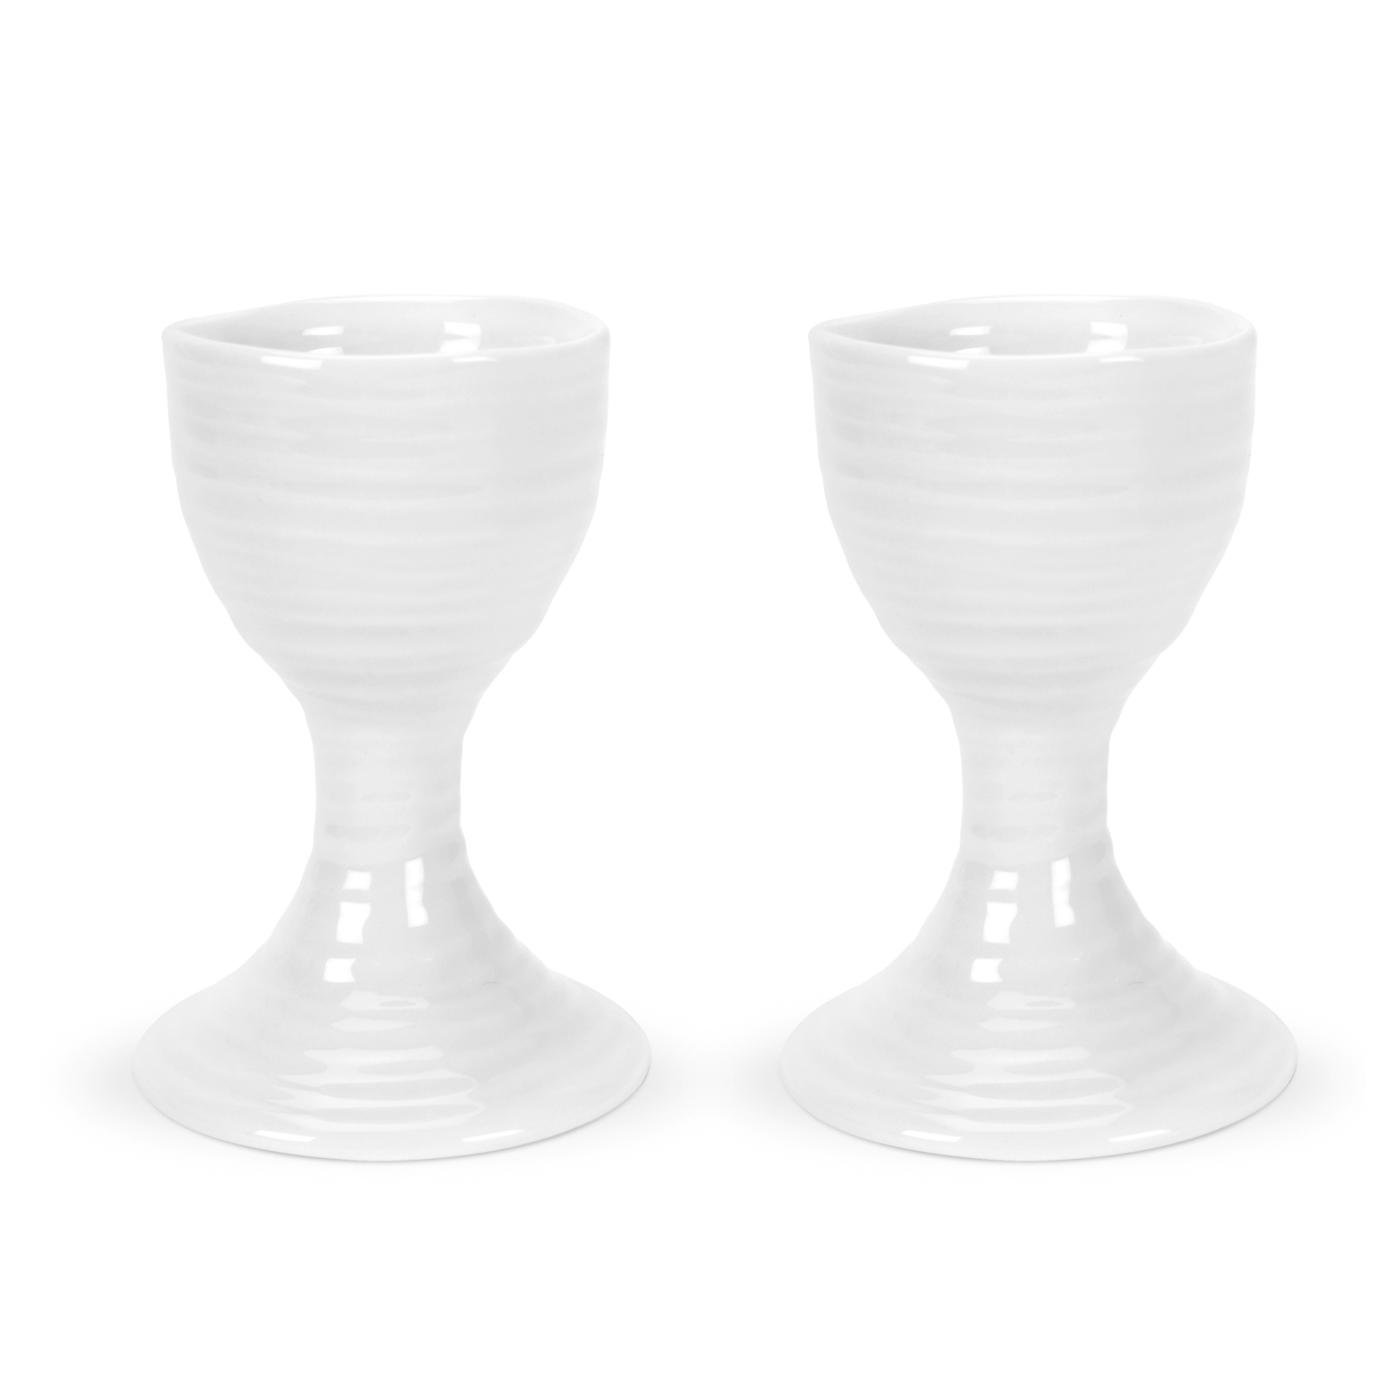 Portmeirion Sophie Conran White Egg Cup,Set of 2 Portmeirion USA 486997